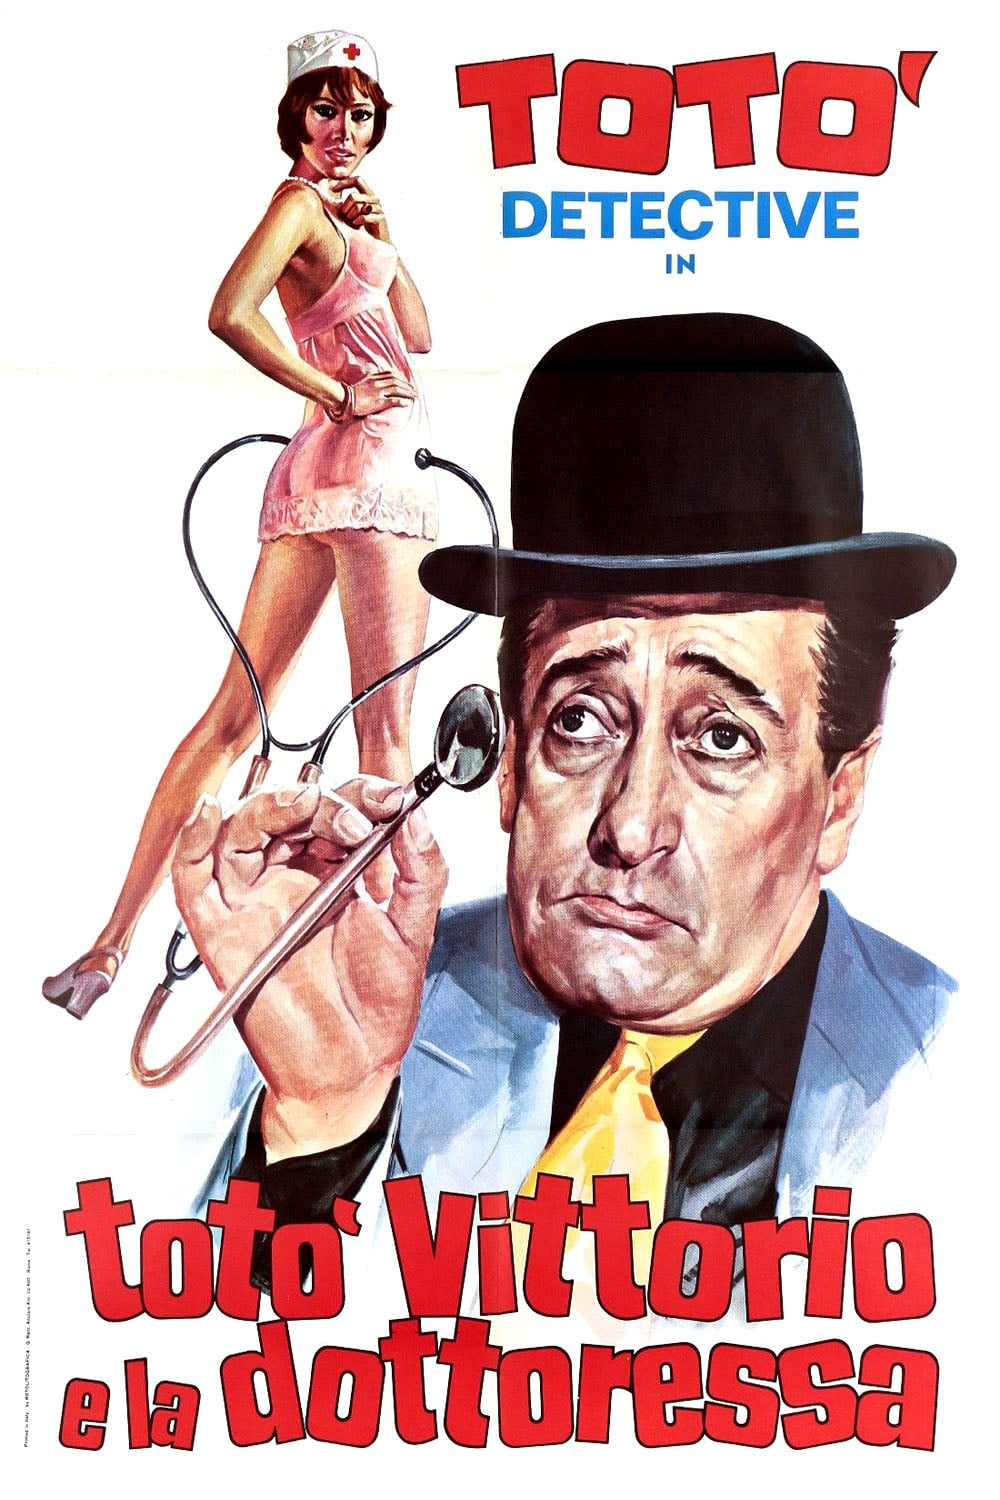 Totò, Vittorio and the Doctor (1957)